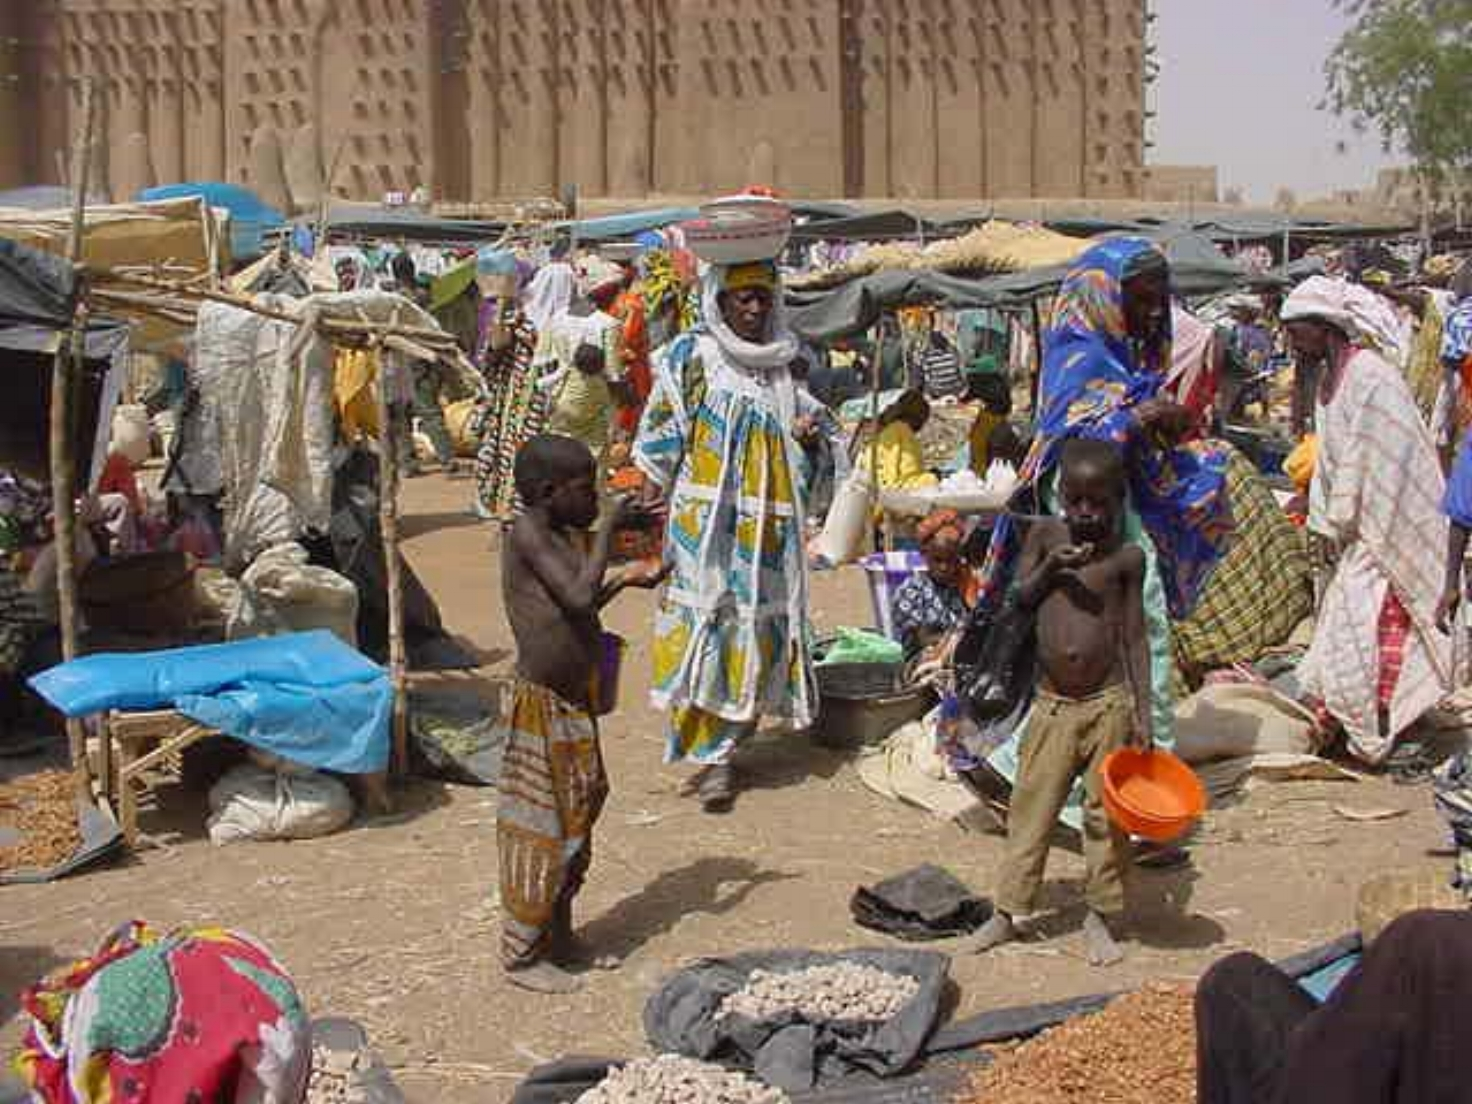 Local boys assist at the Djenne market